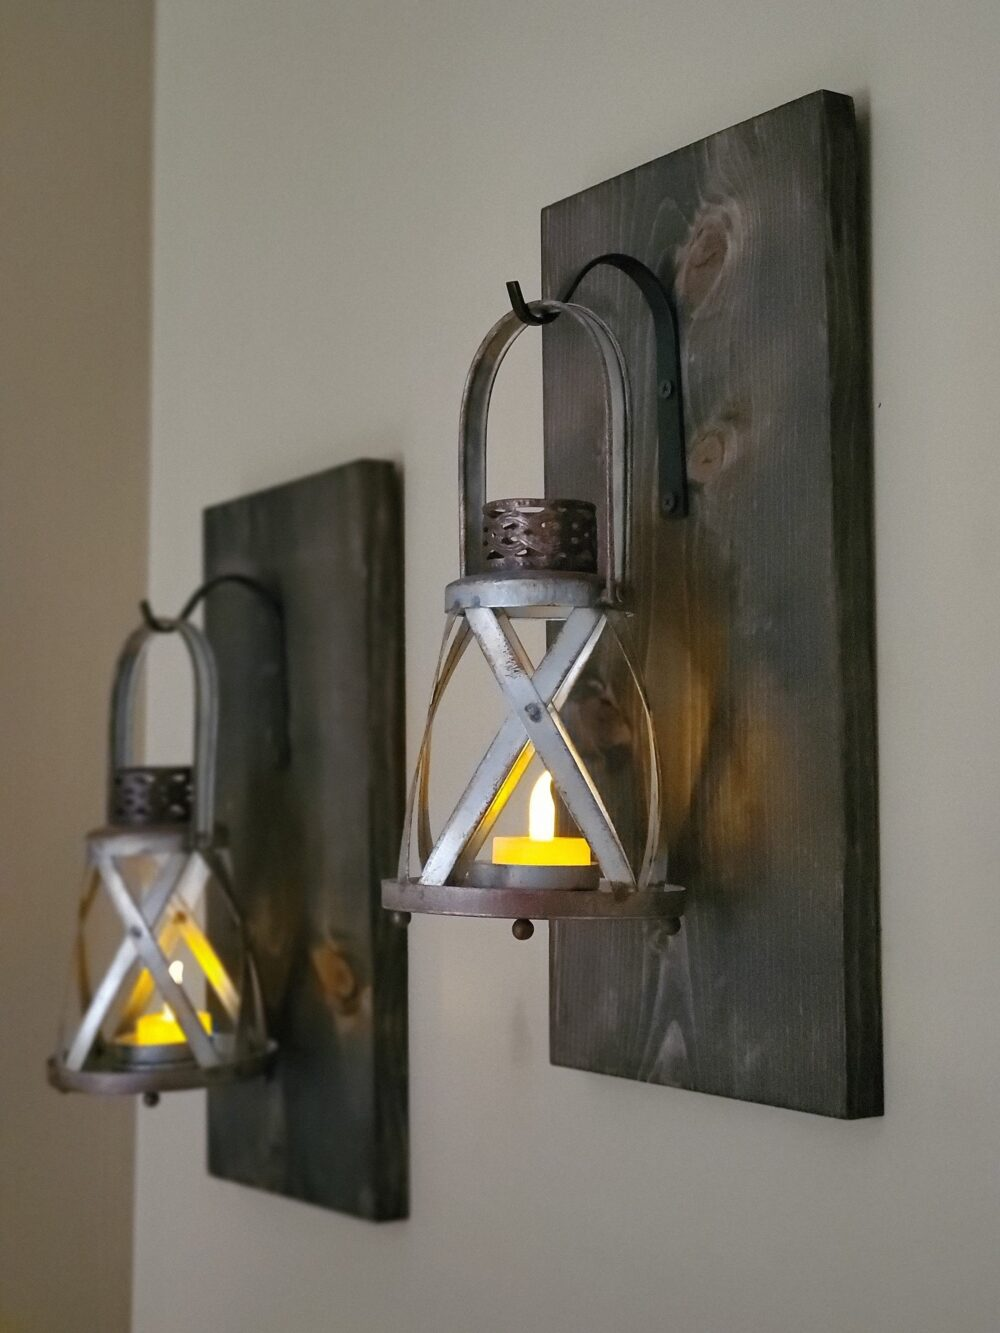 Lighted Wall Sconce | Rustic Lantern Home Decor Candle Farmhouse Holder